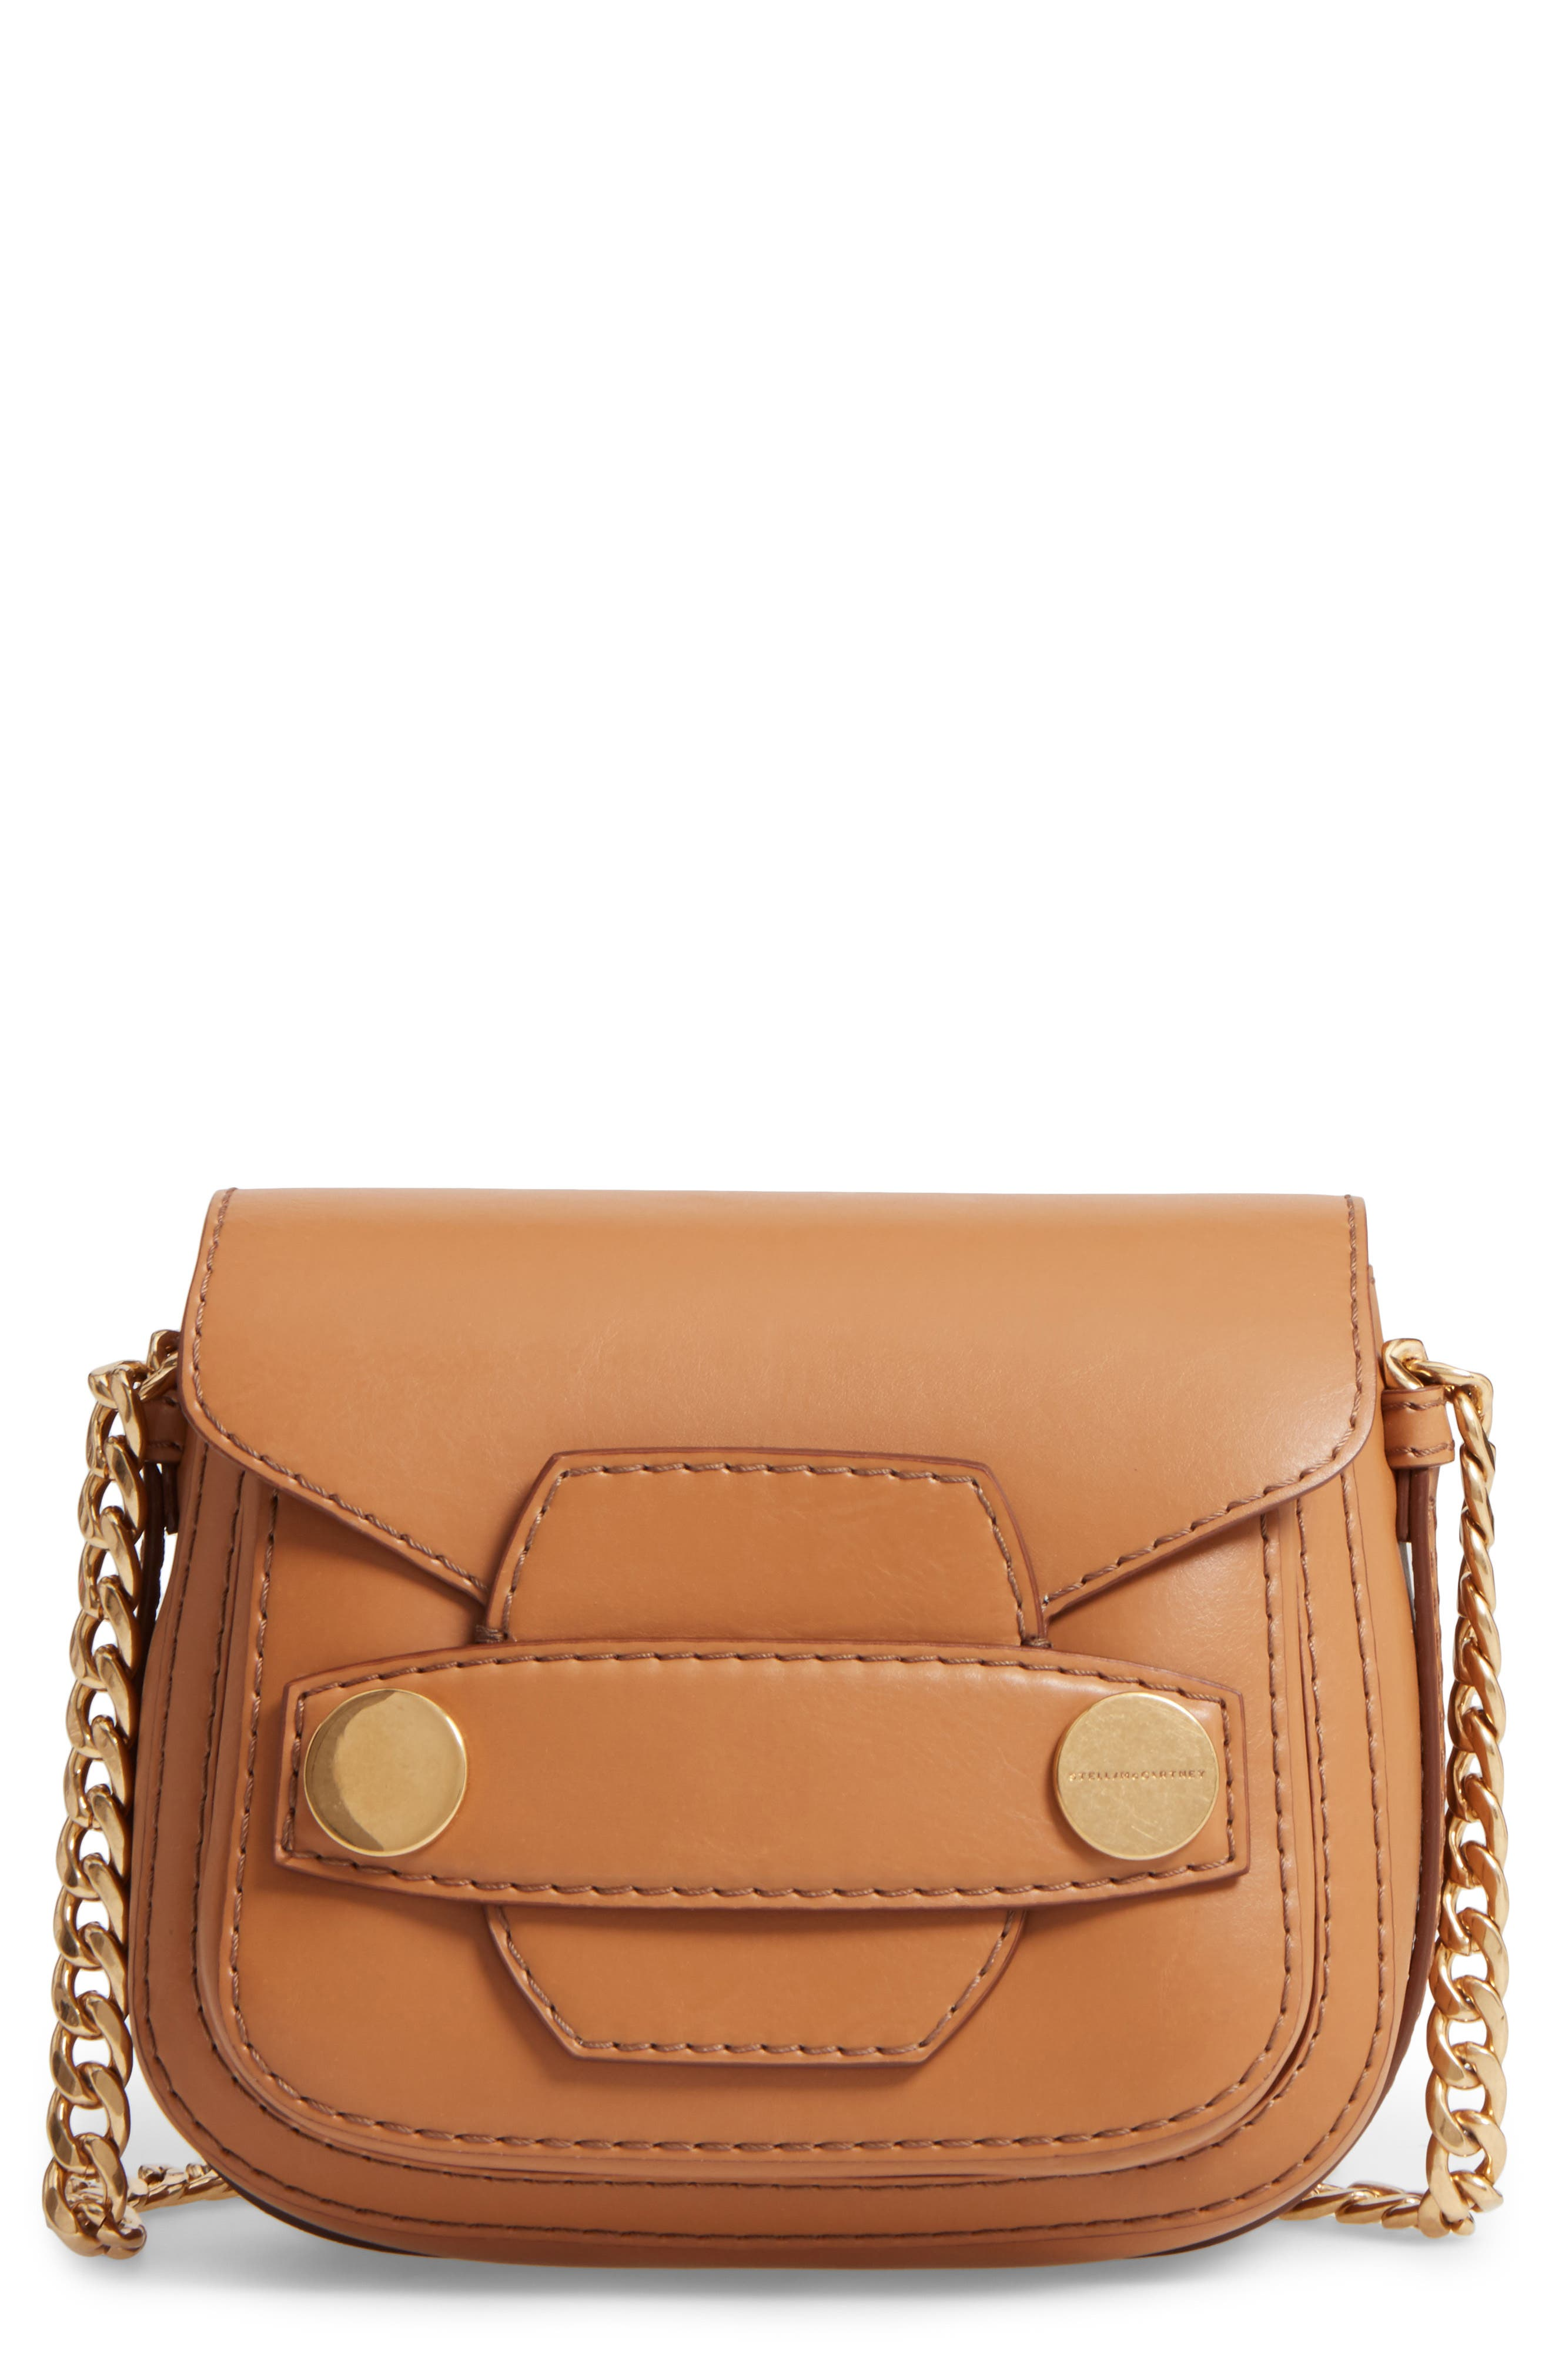 Textured Faux Leather Crossbody Bag,                             Main thumbnail 1, color,